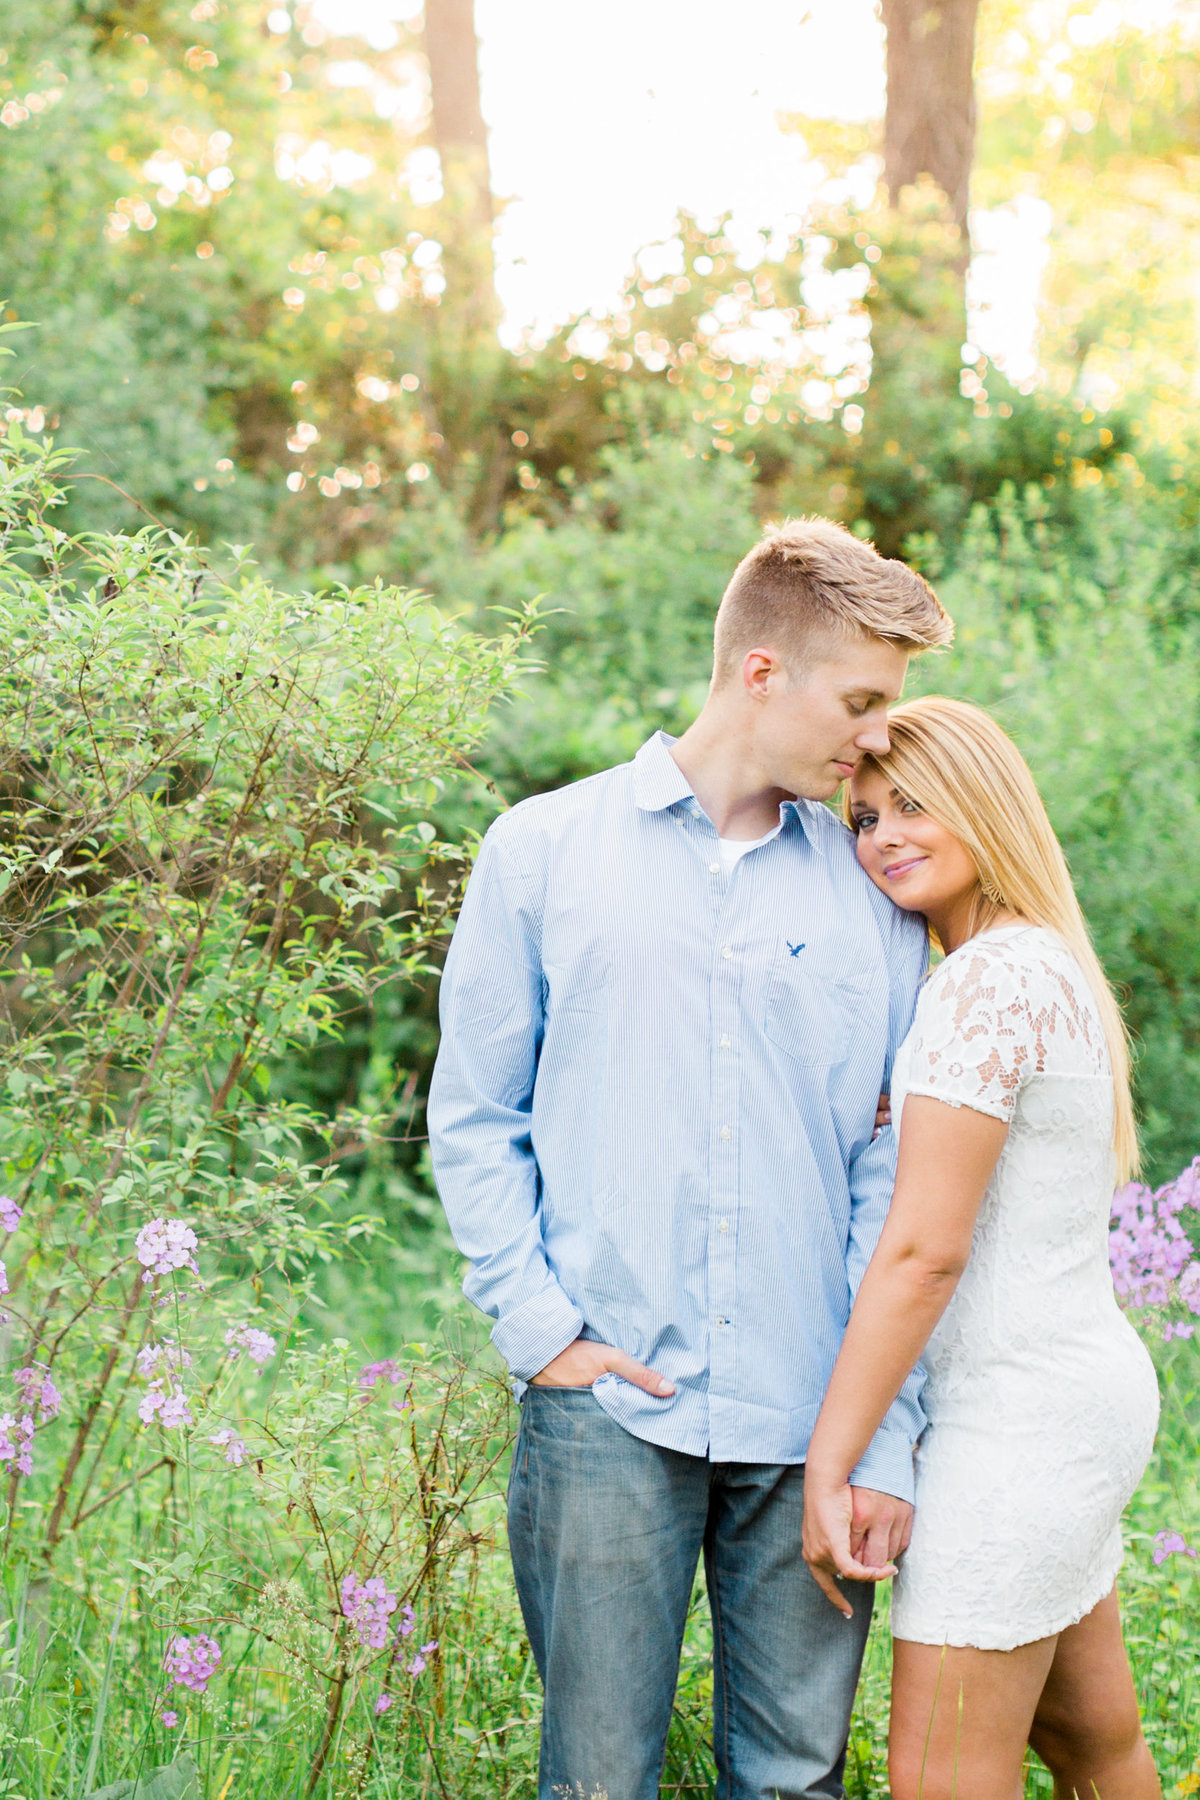 Nick-Megan-Outdoor-Wild-Adventurous-Engagement-3754